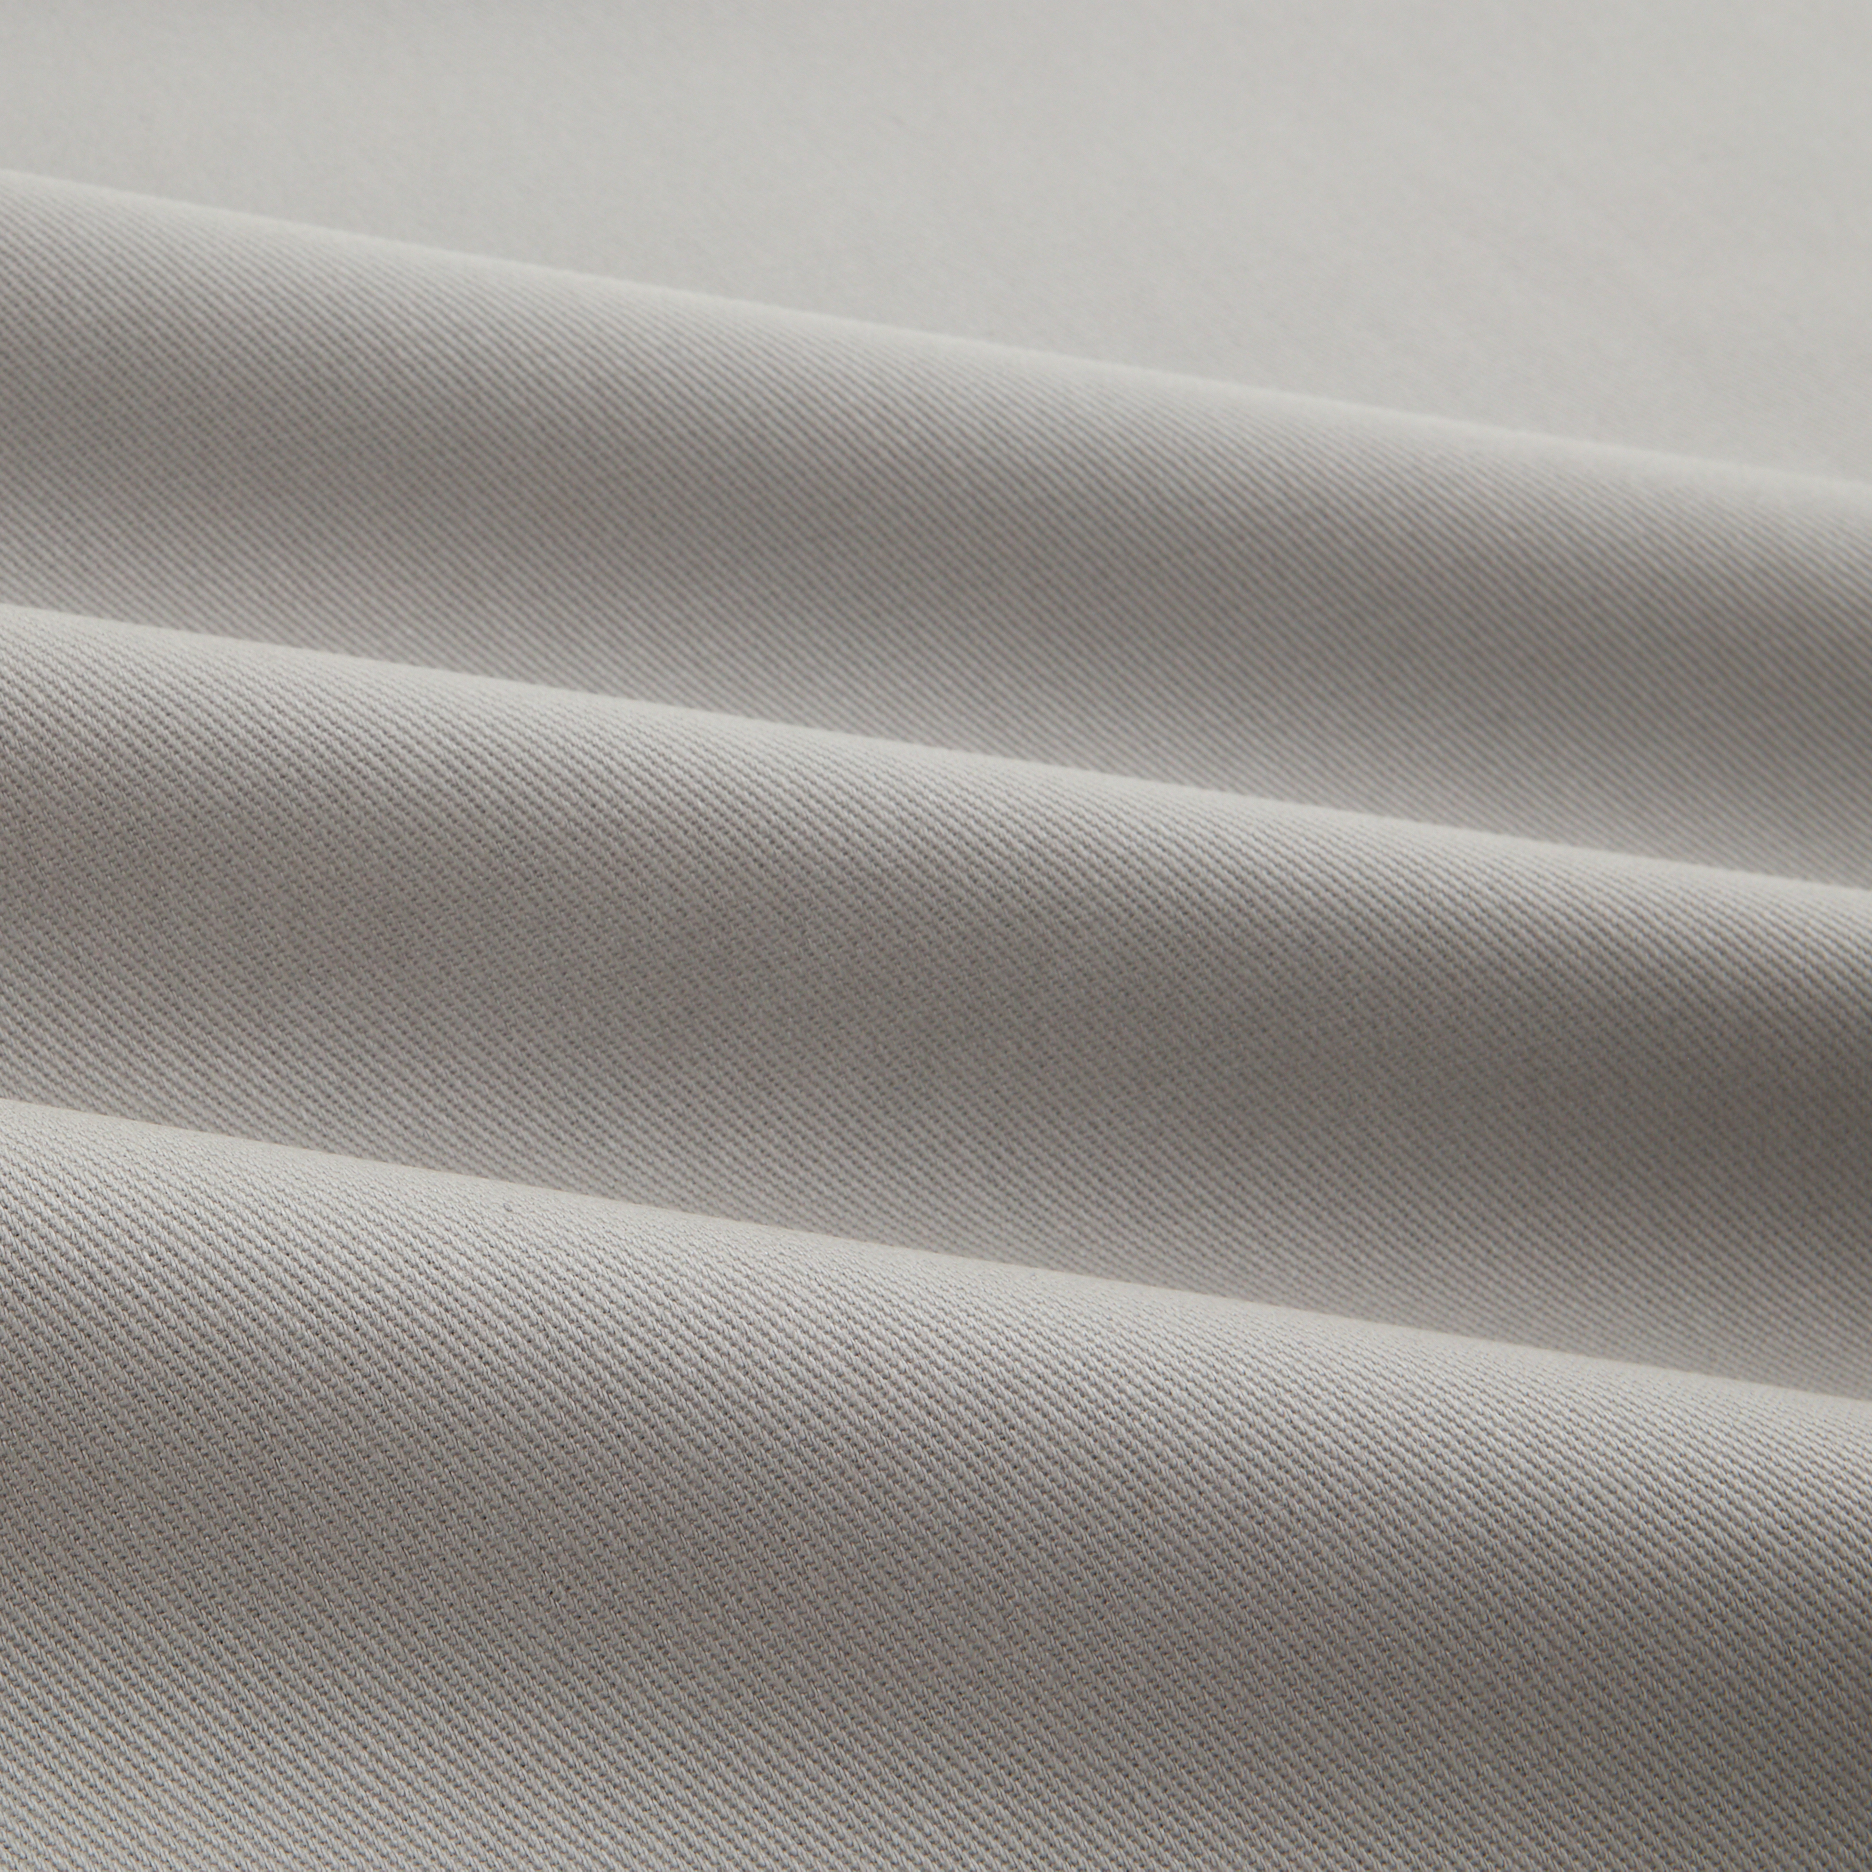 9 oz Brushed Bull Denim Cloud Fabric by Carr in USA